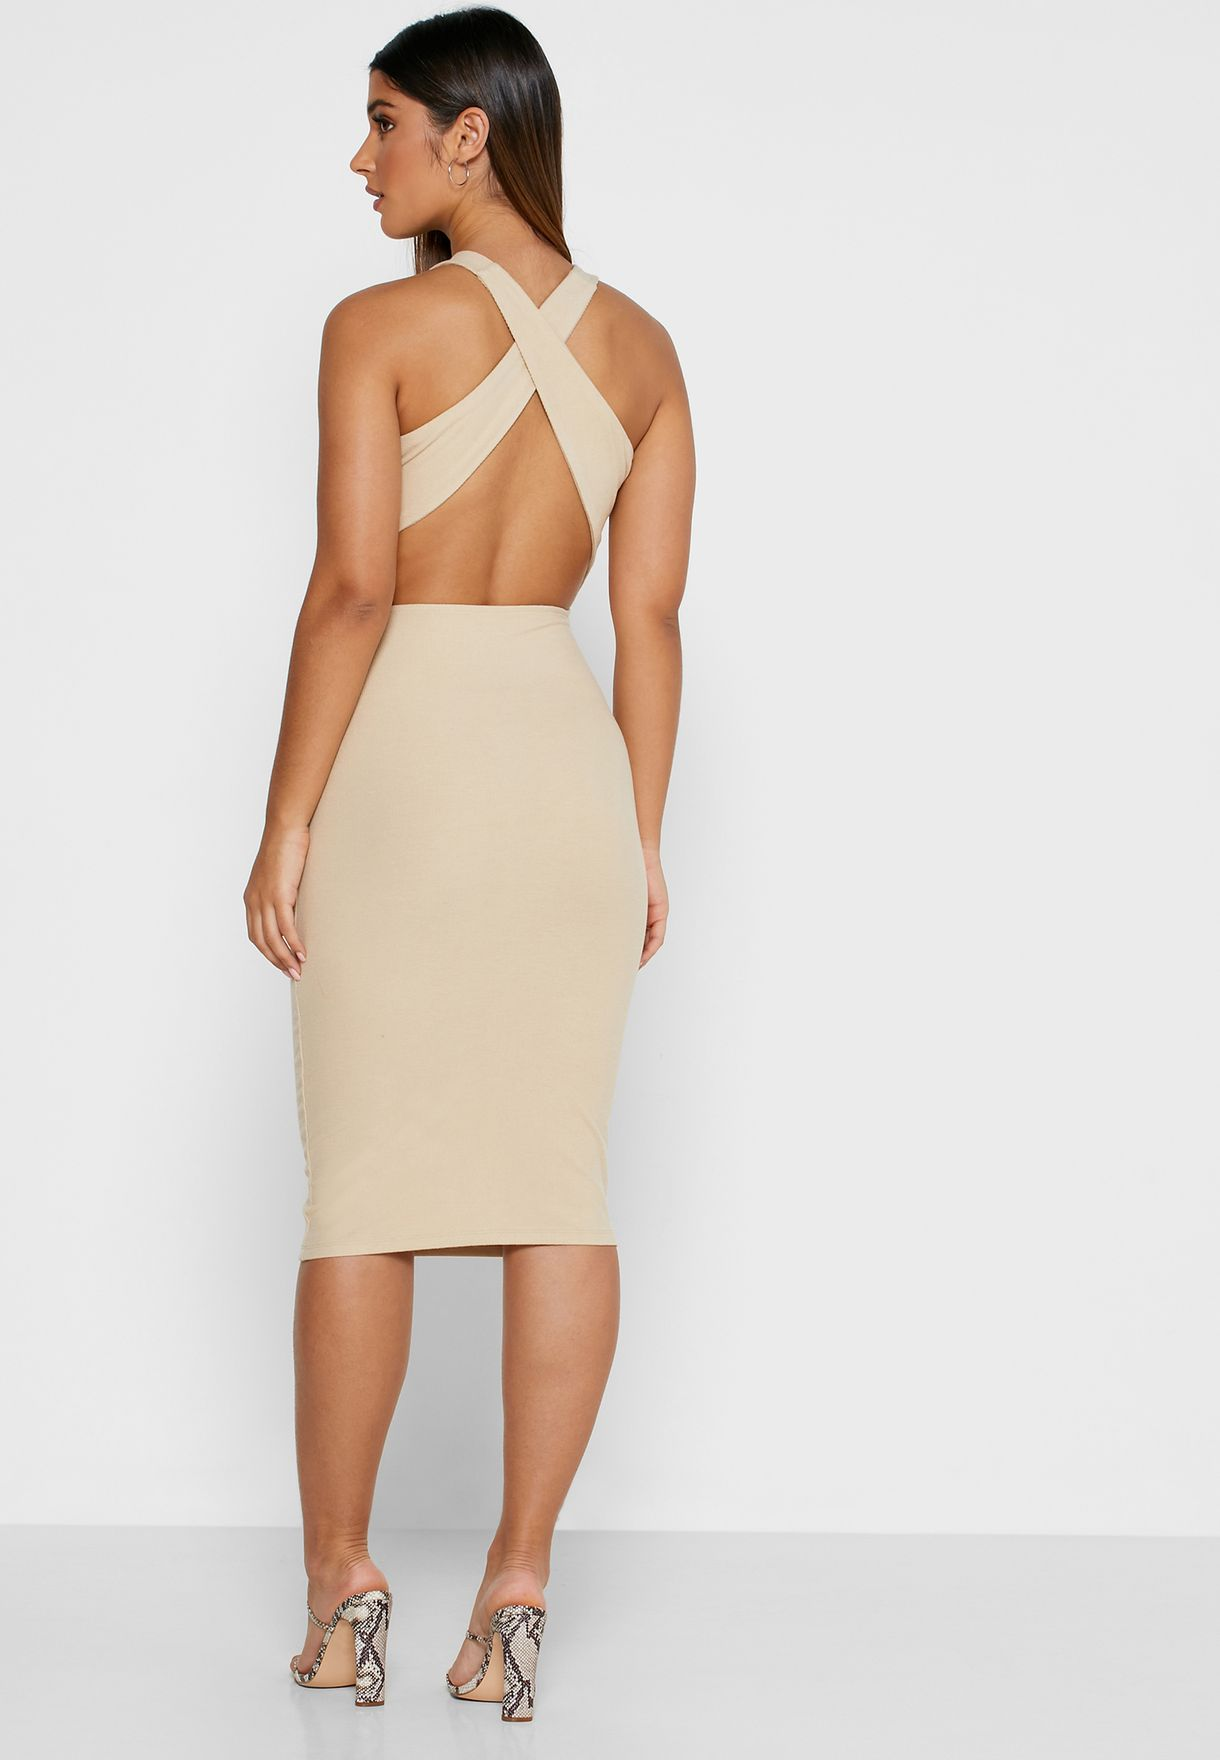 4th & Reckless Tie Waist Bodycon Dress - Women Clothing RnMD9